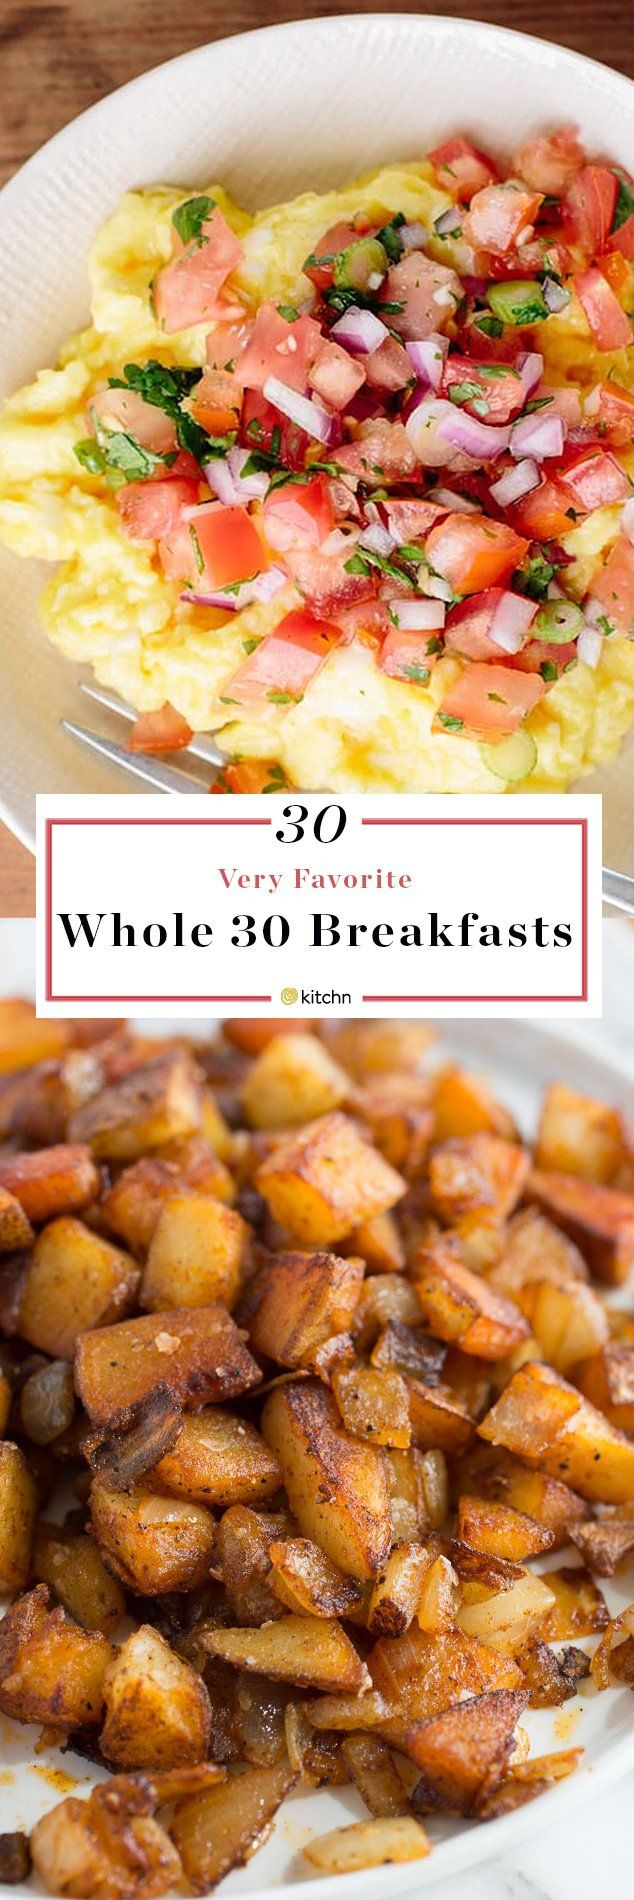 30 Best and Favorite Breakfasts for a Month of the Whole30 or Paleo Diet. Whether it's your first week of Whole 30 or you've been following the diet for a long time, these ideas and recipes for breakfasts and meals will change your mornings! Start out the new year in a healthy way with these eggs, chicken, beef, fish, potatoes, and vegetarian meals. This is a great way to lose weight!